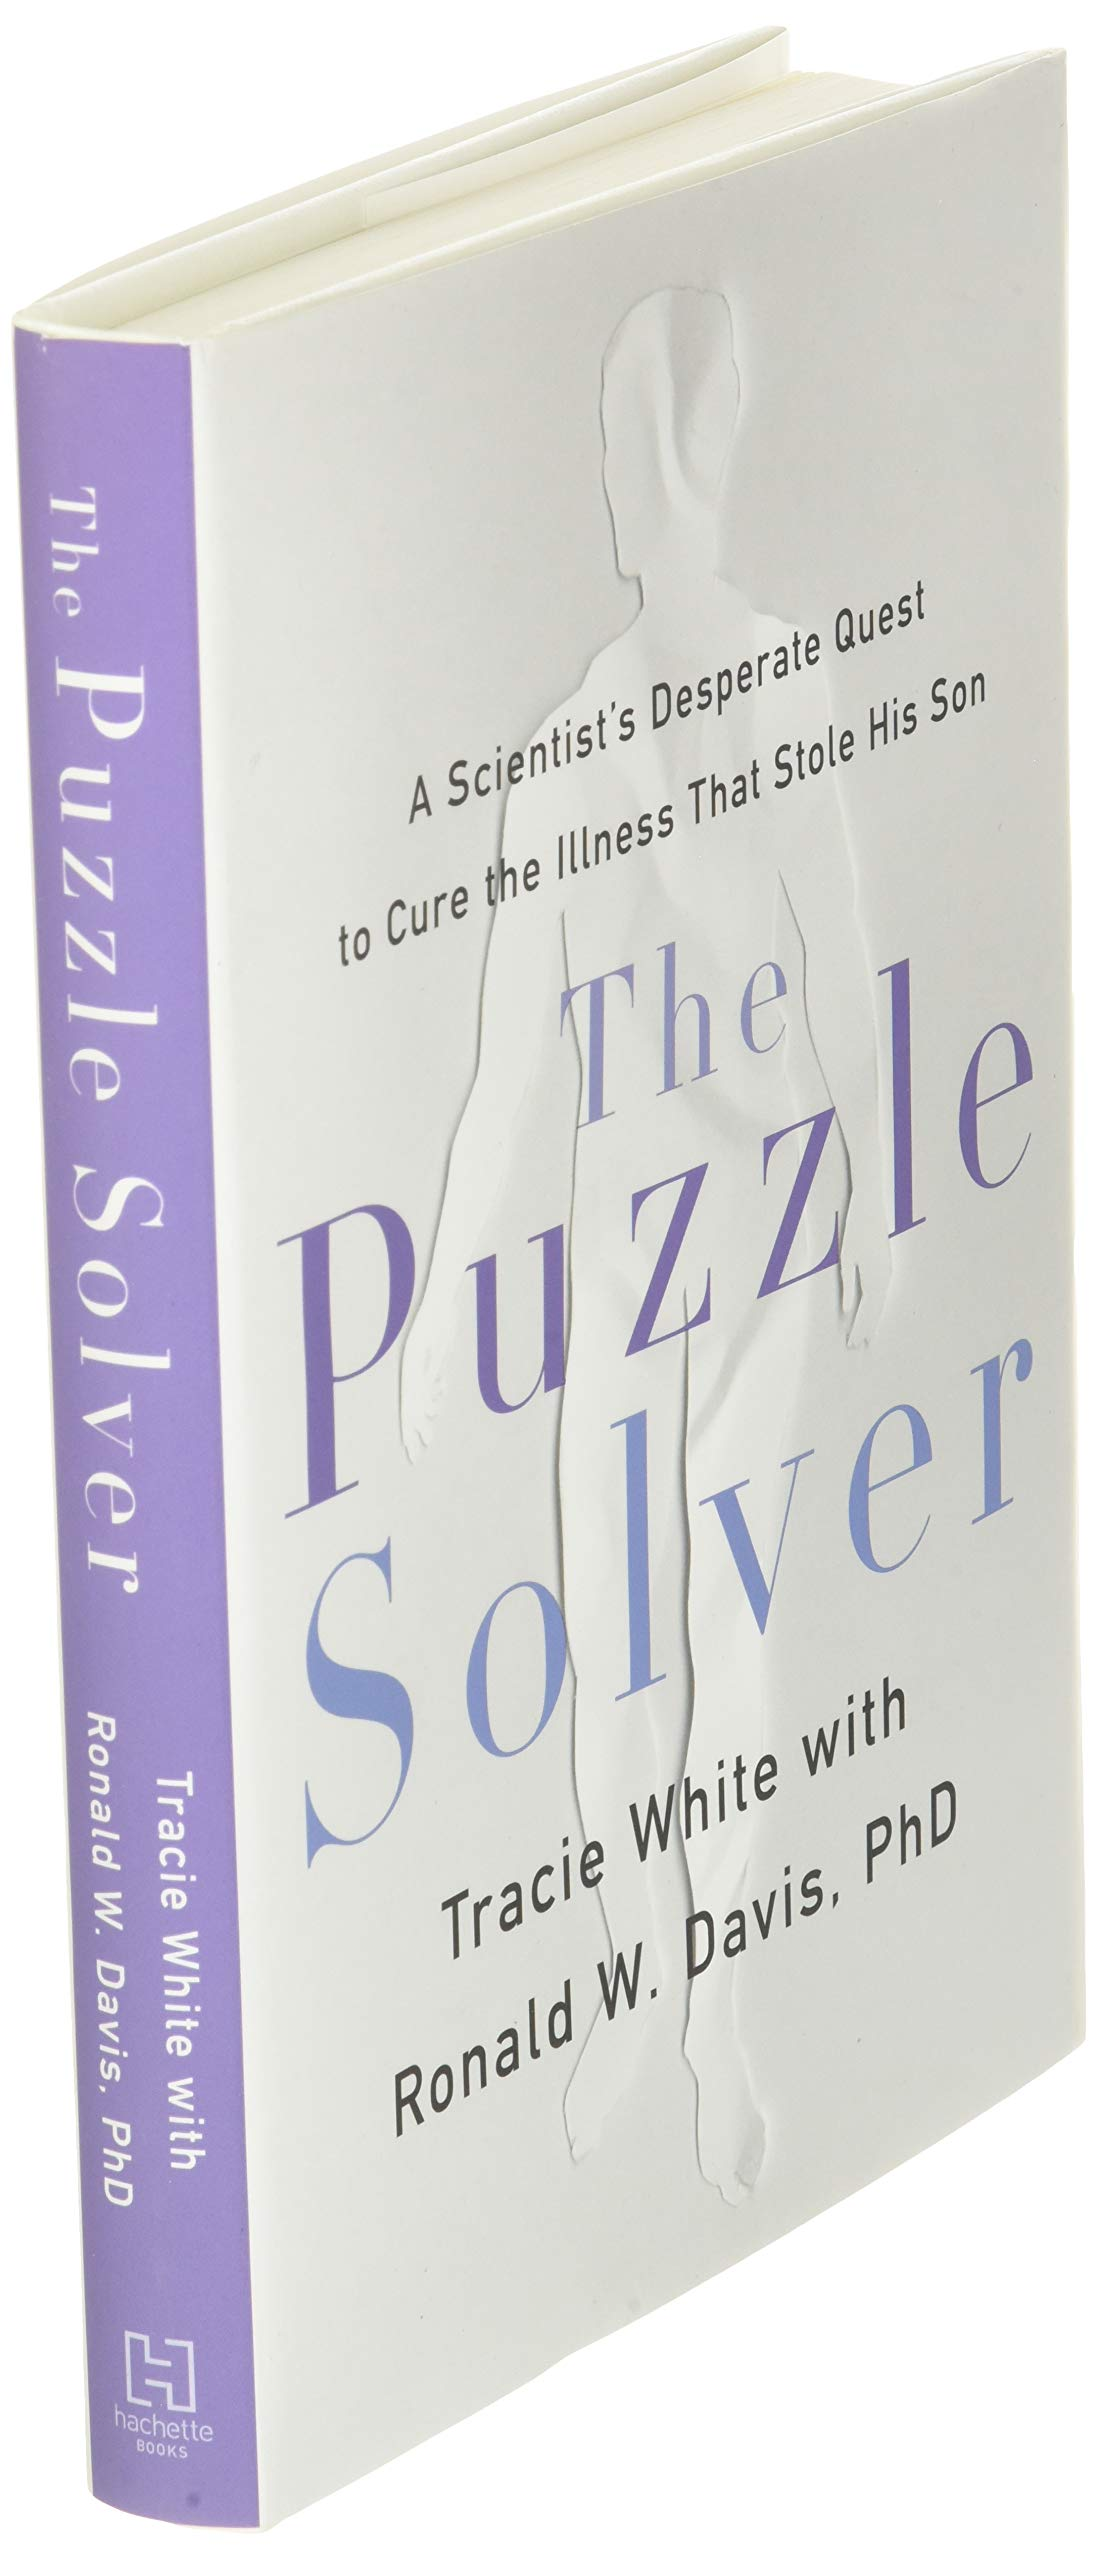 Puzzle Solver: A Scientists Desperate Quest to Cure the ...